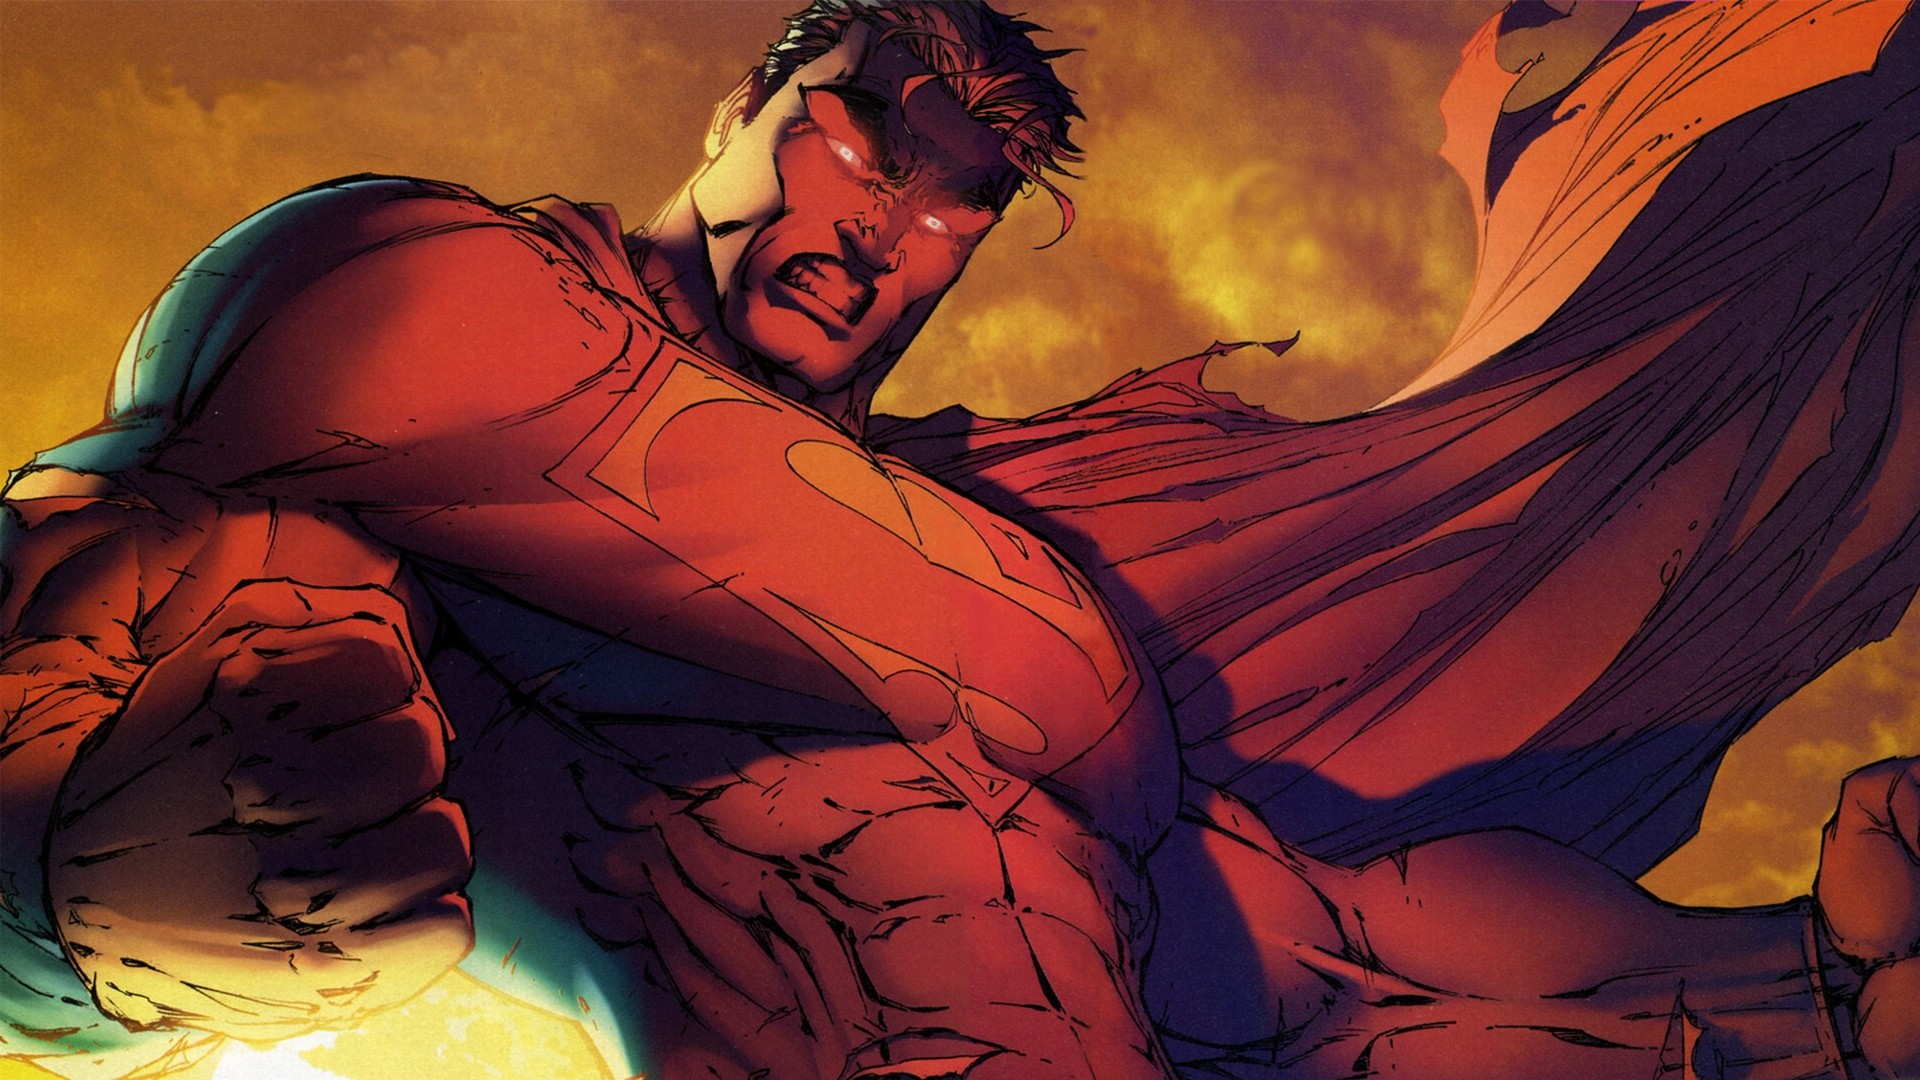 Res: 1920x1080, DOWNLOAD PHOTO · Previous story Download Superman Wallpapers